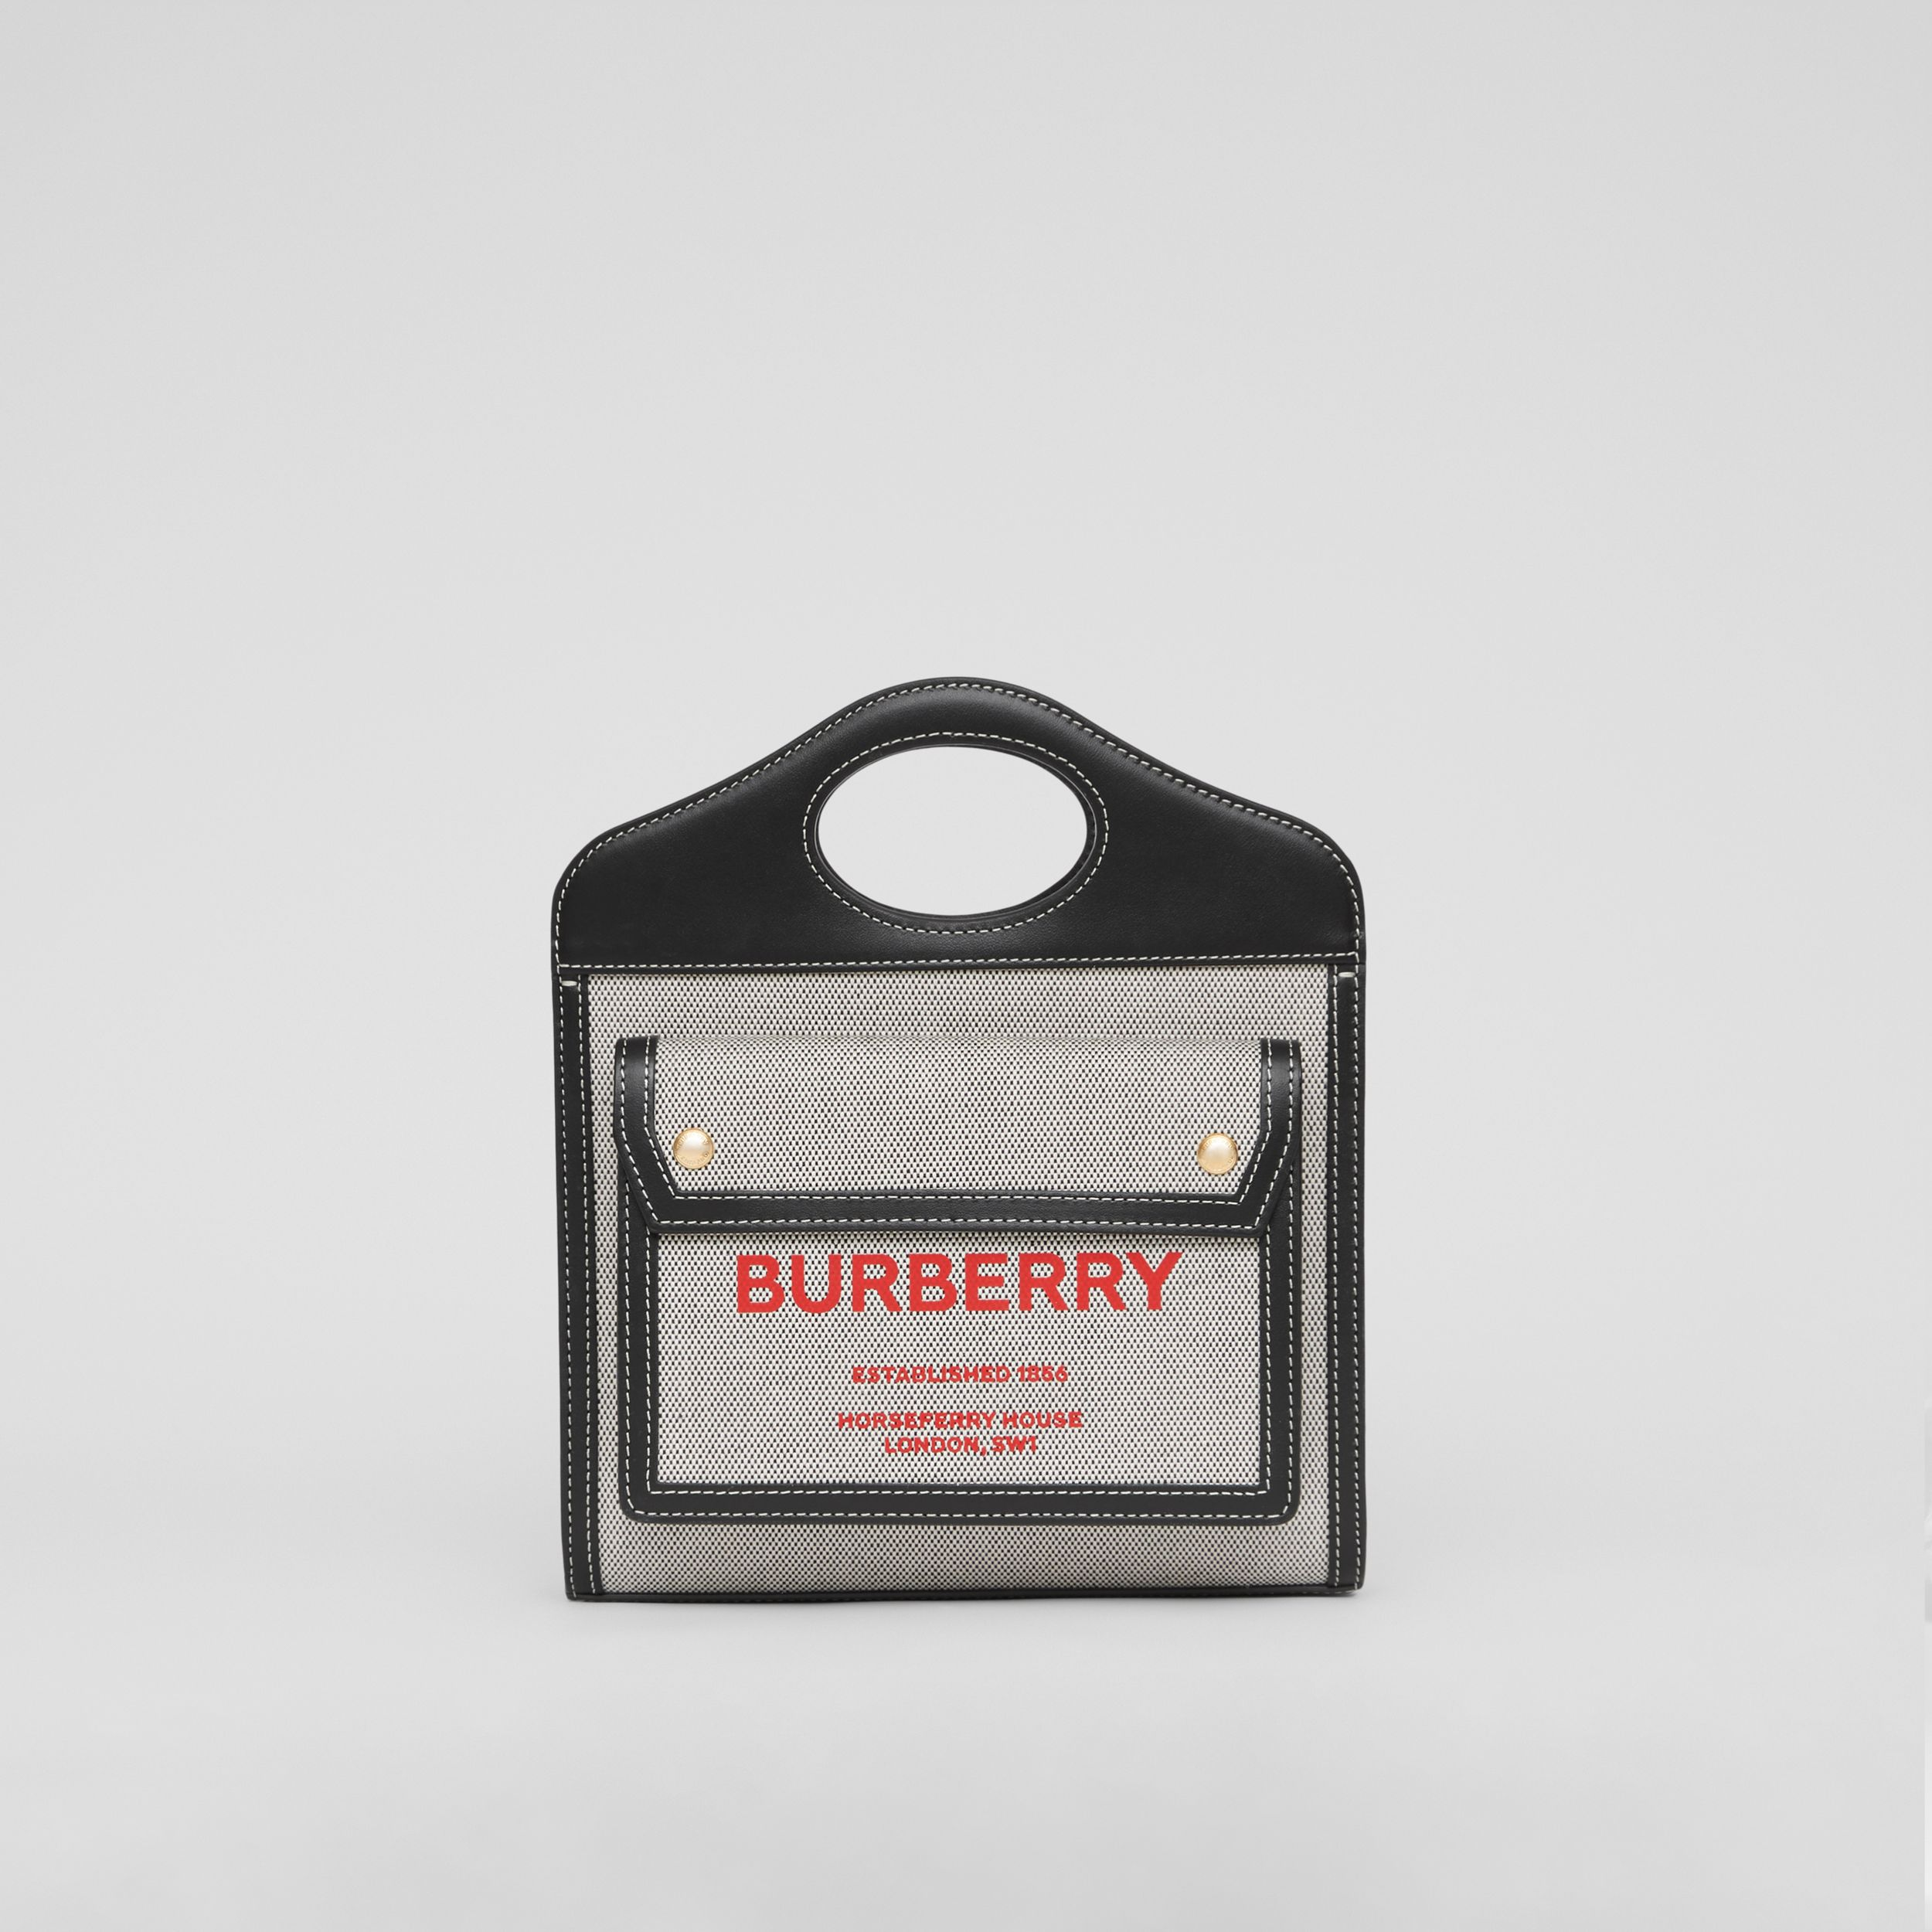 Mini Two-tone Canvas and Leather Pocket Bag in Black/fiery Red - Women | Burberry United Kingdom - 1